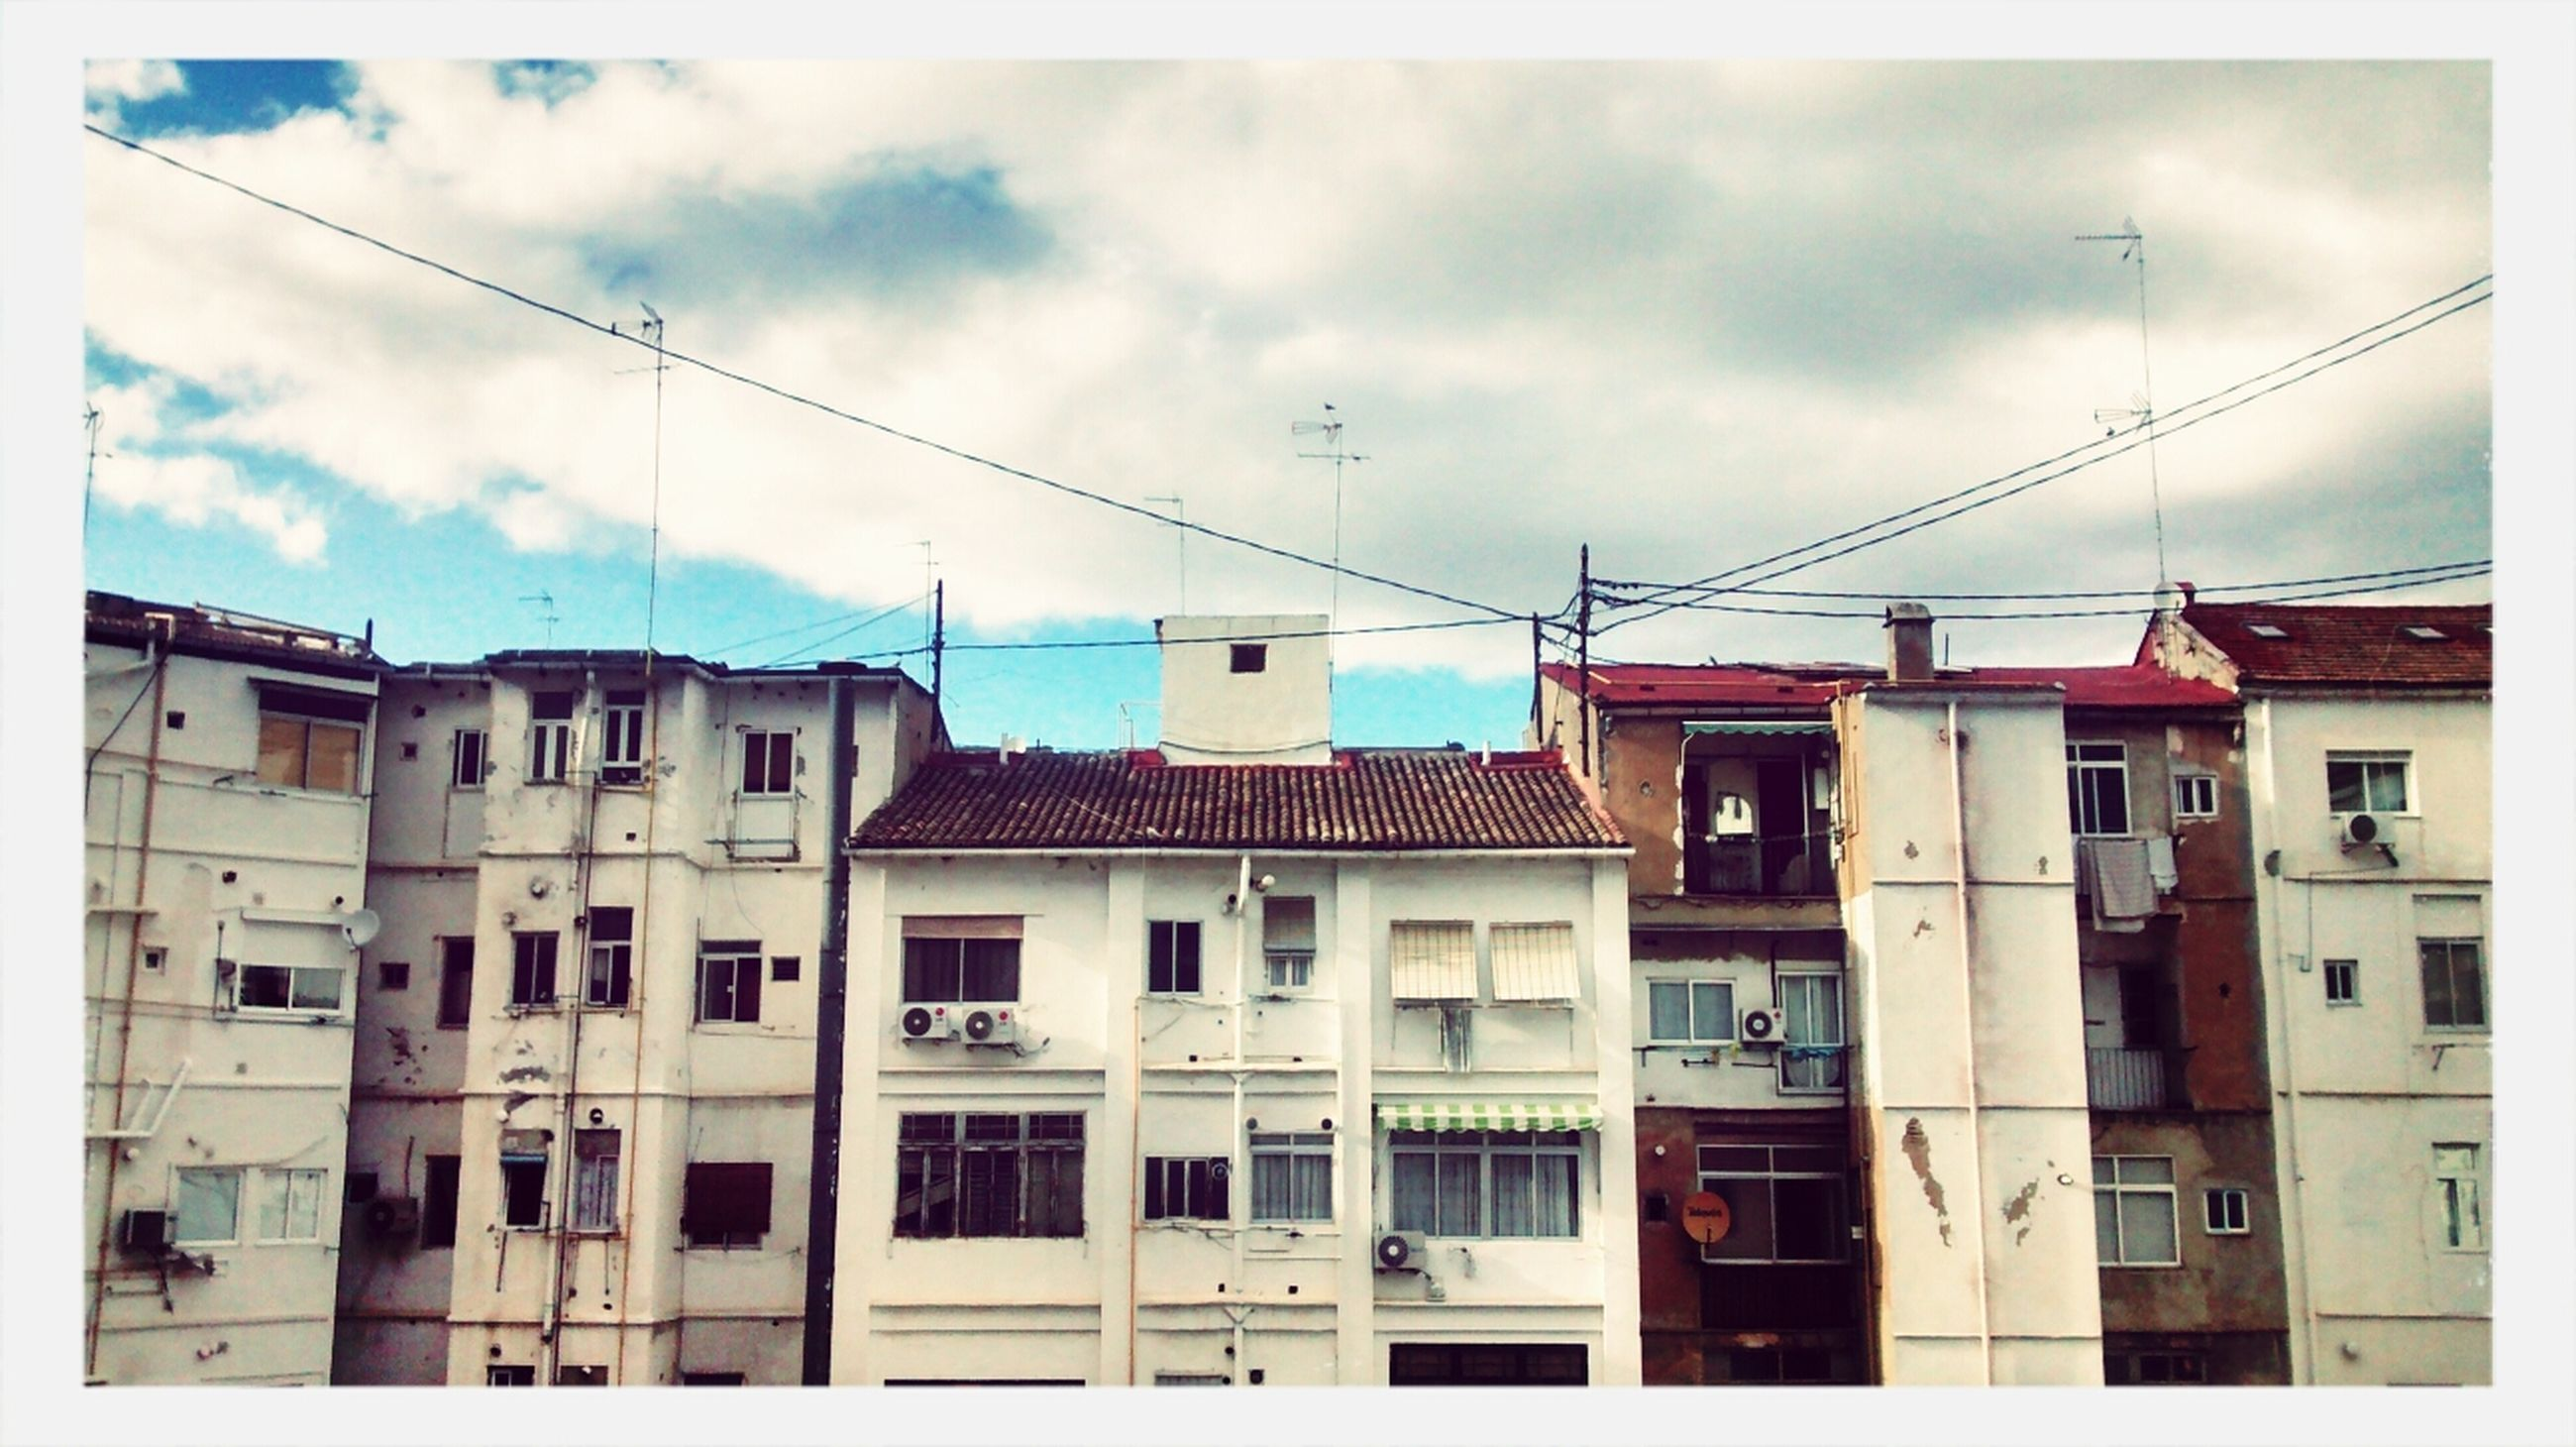 architecture, building exterior, built structure, low angle view, sky, power line, transfer print, cloud - sky, cable, auto post production filter, cloud, building, window, residential building, cloudy, residential structure, day, city, outdoors, no people